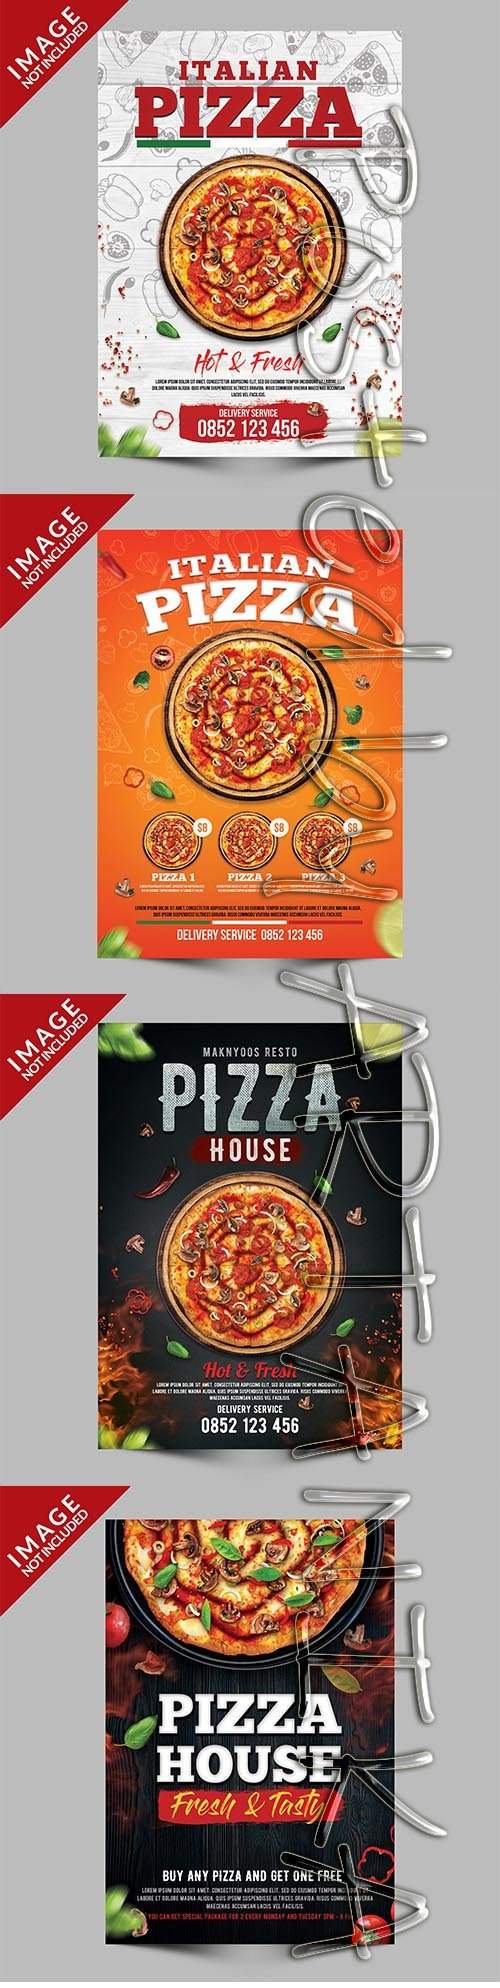 Pizza Premium Poster Template Set